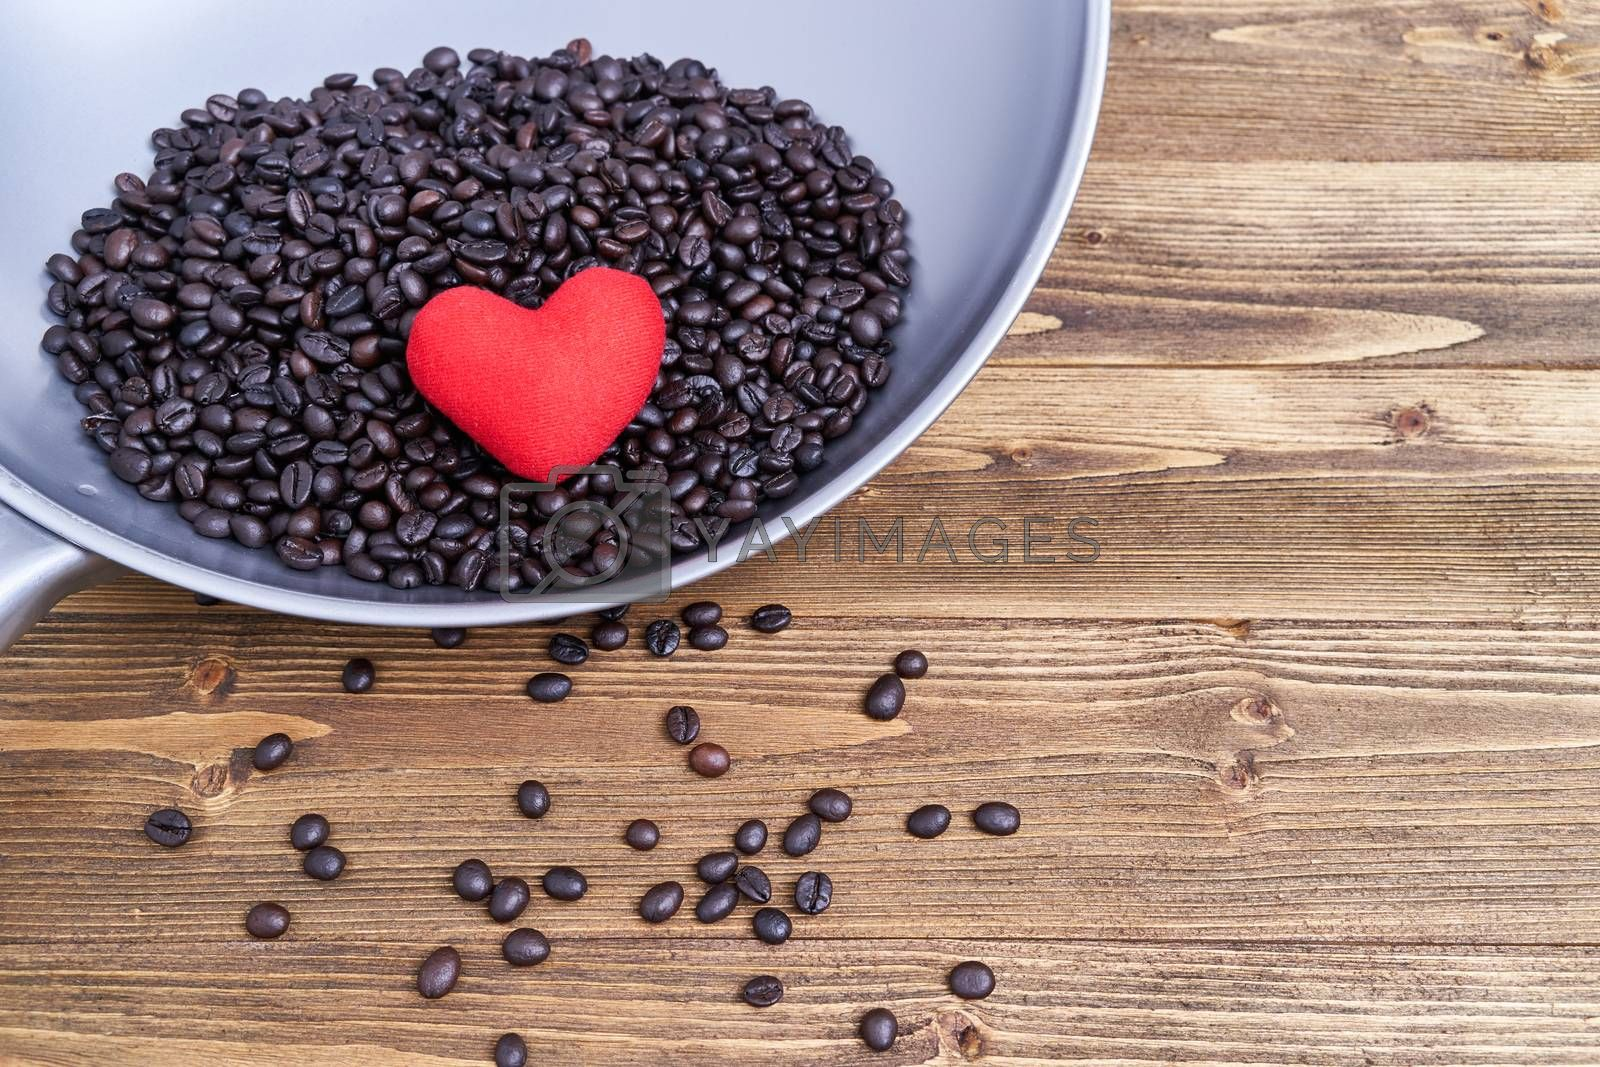 Royalty free image of Close up red heart on pile coffee bean in pan by eaglesky